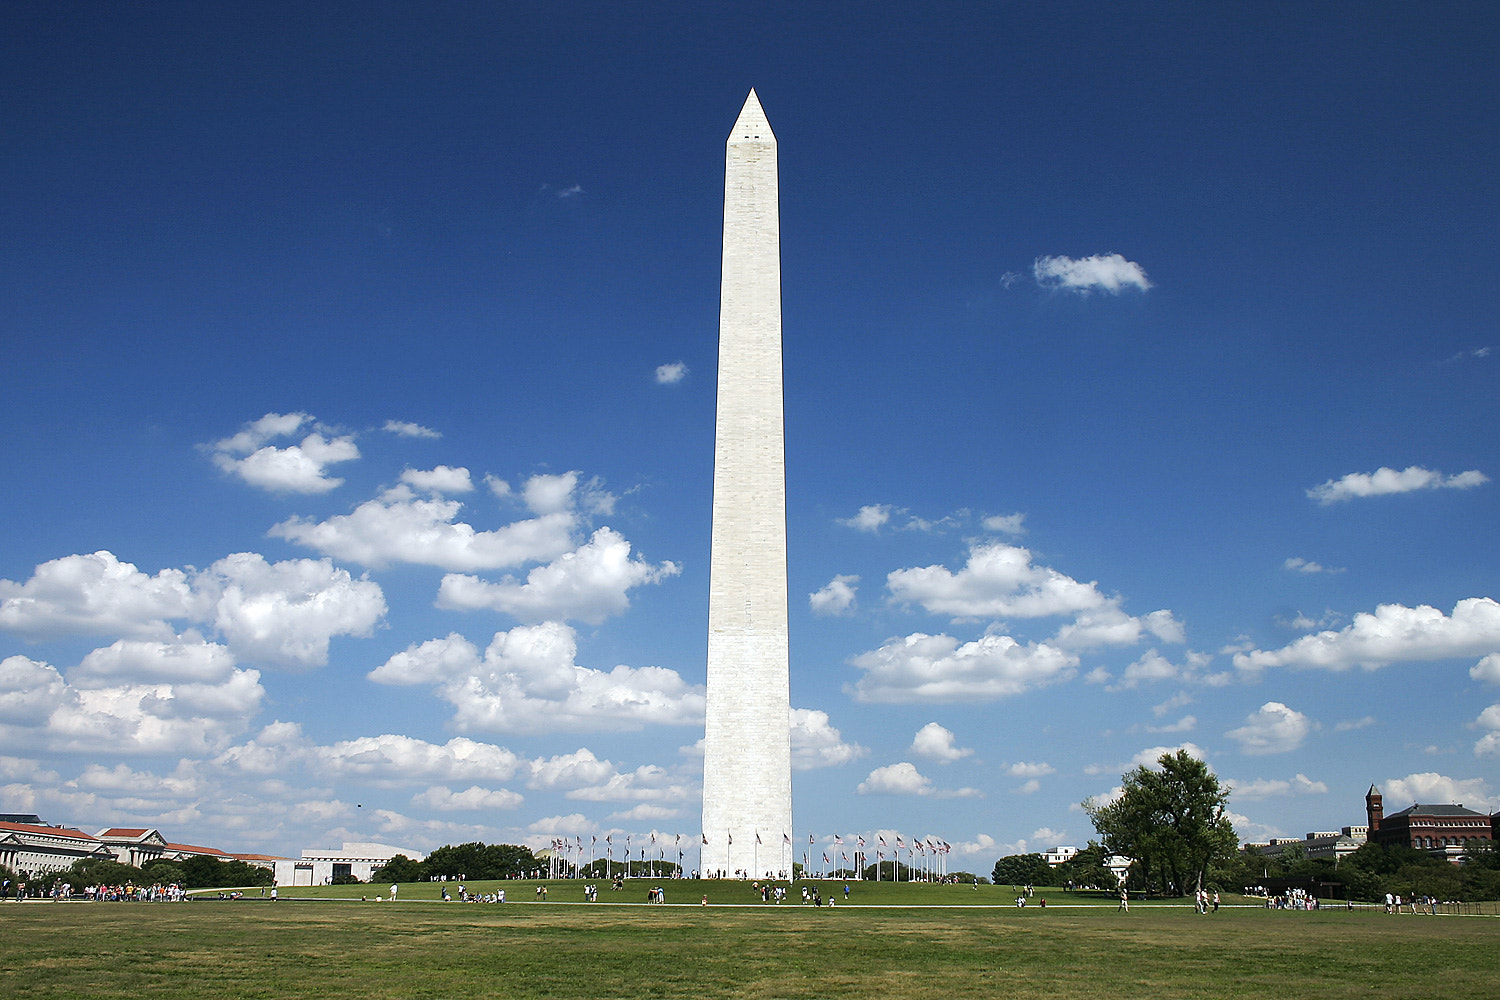 Photograph The Washington Monument by Andrew Romaneschi on 500px